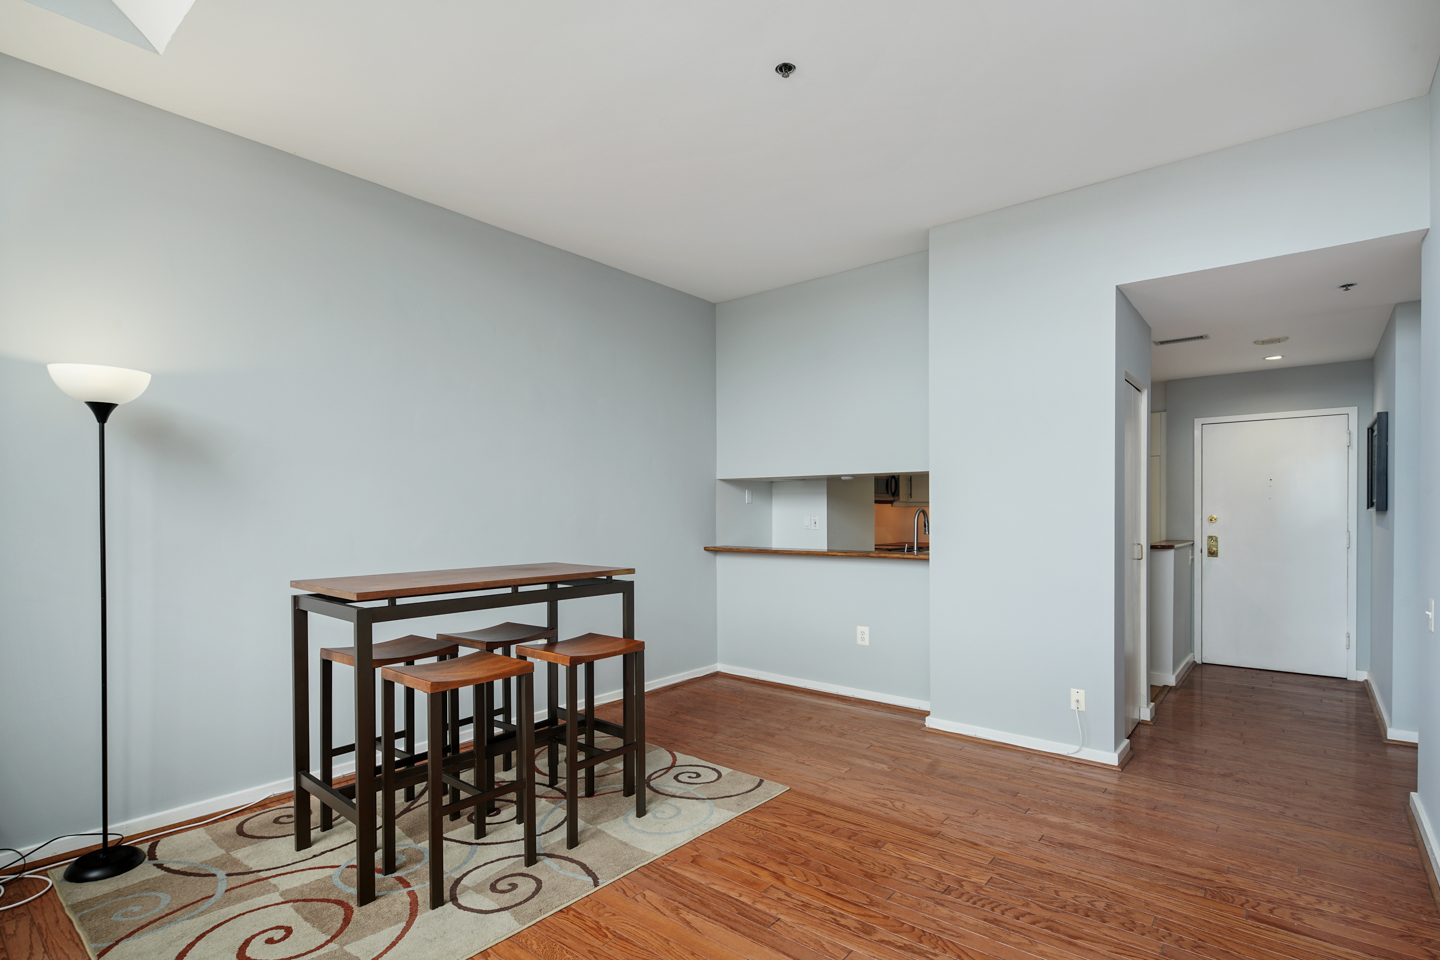 315 New St Unit 410 reshoot-MLS-4.jpg